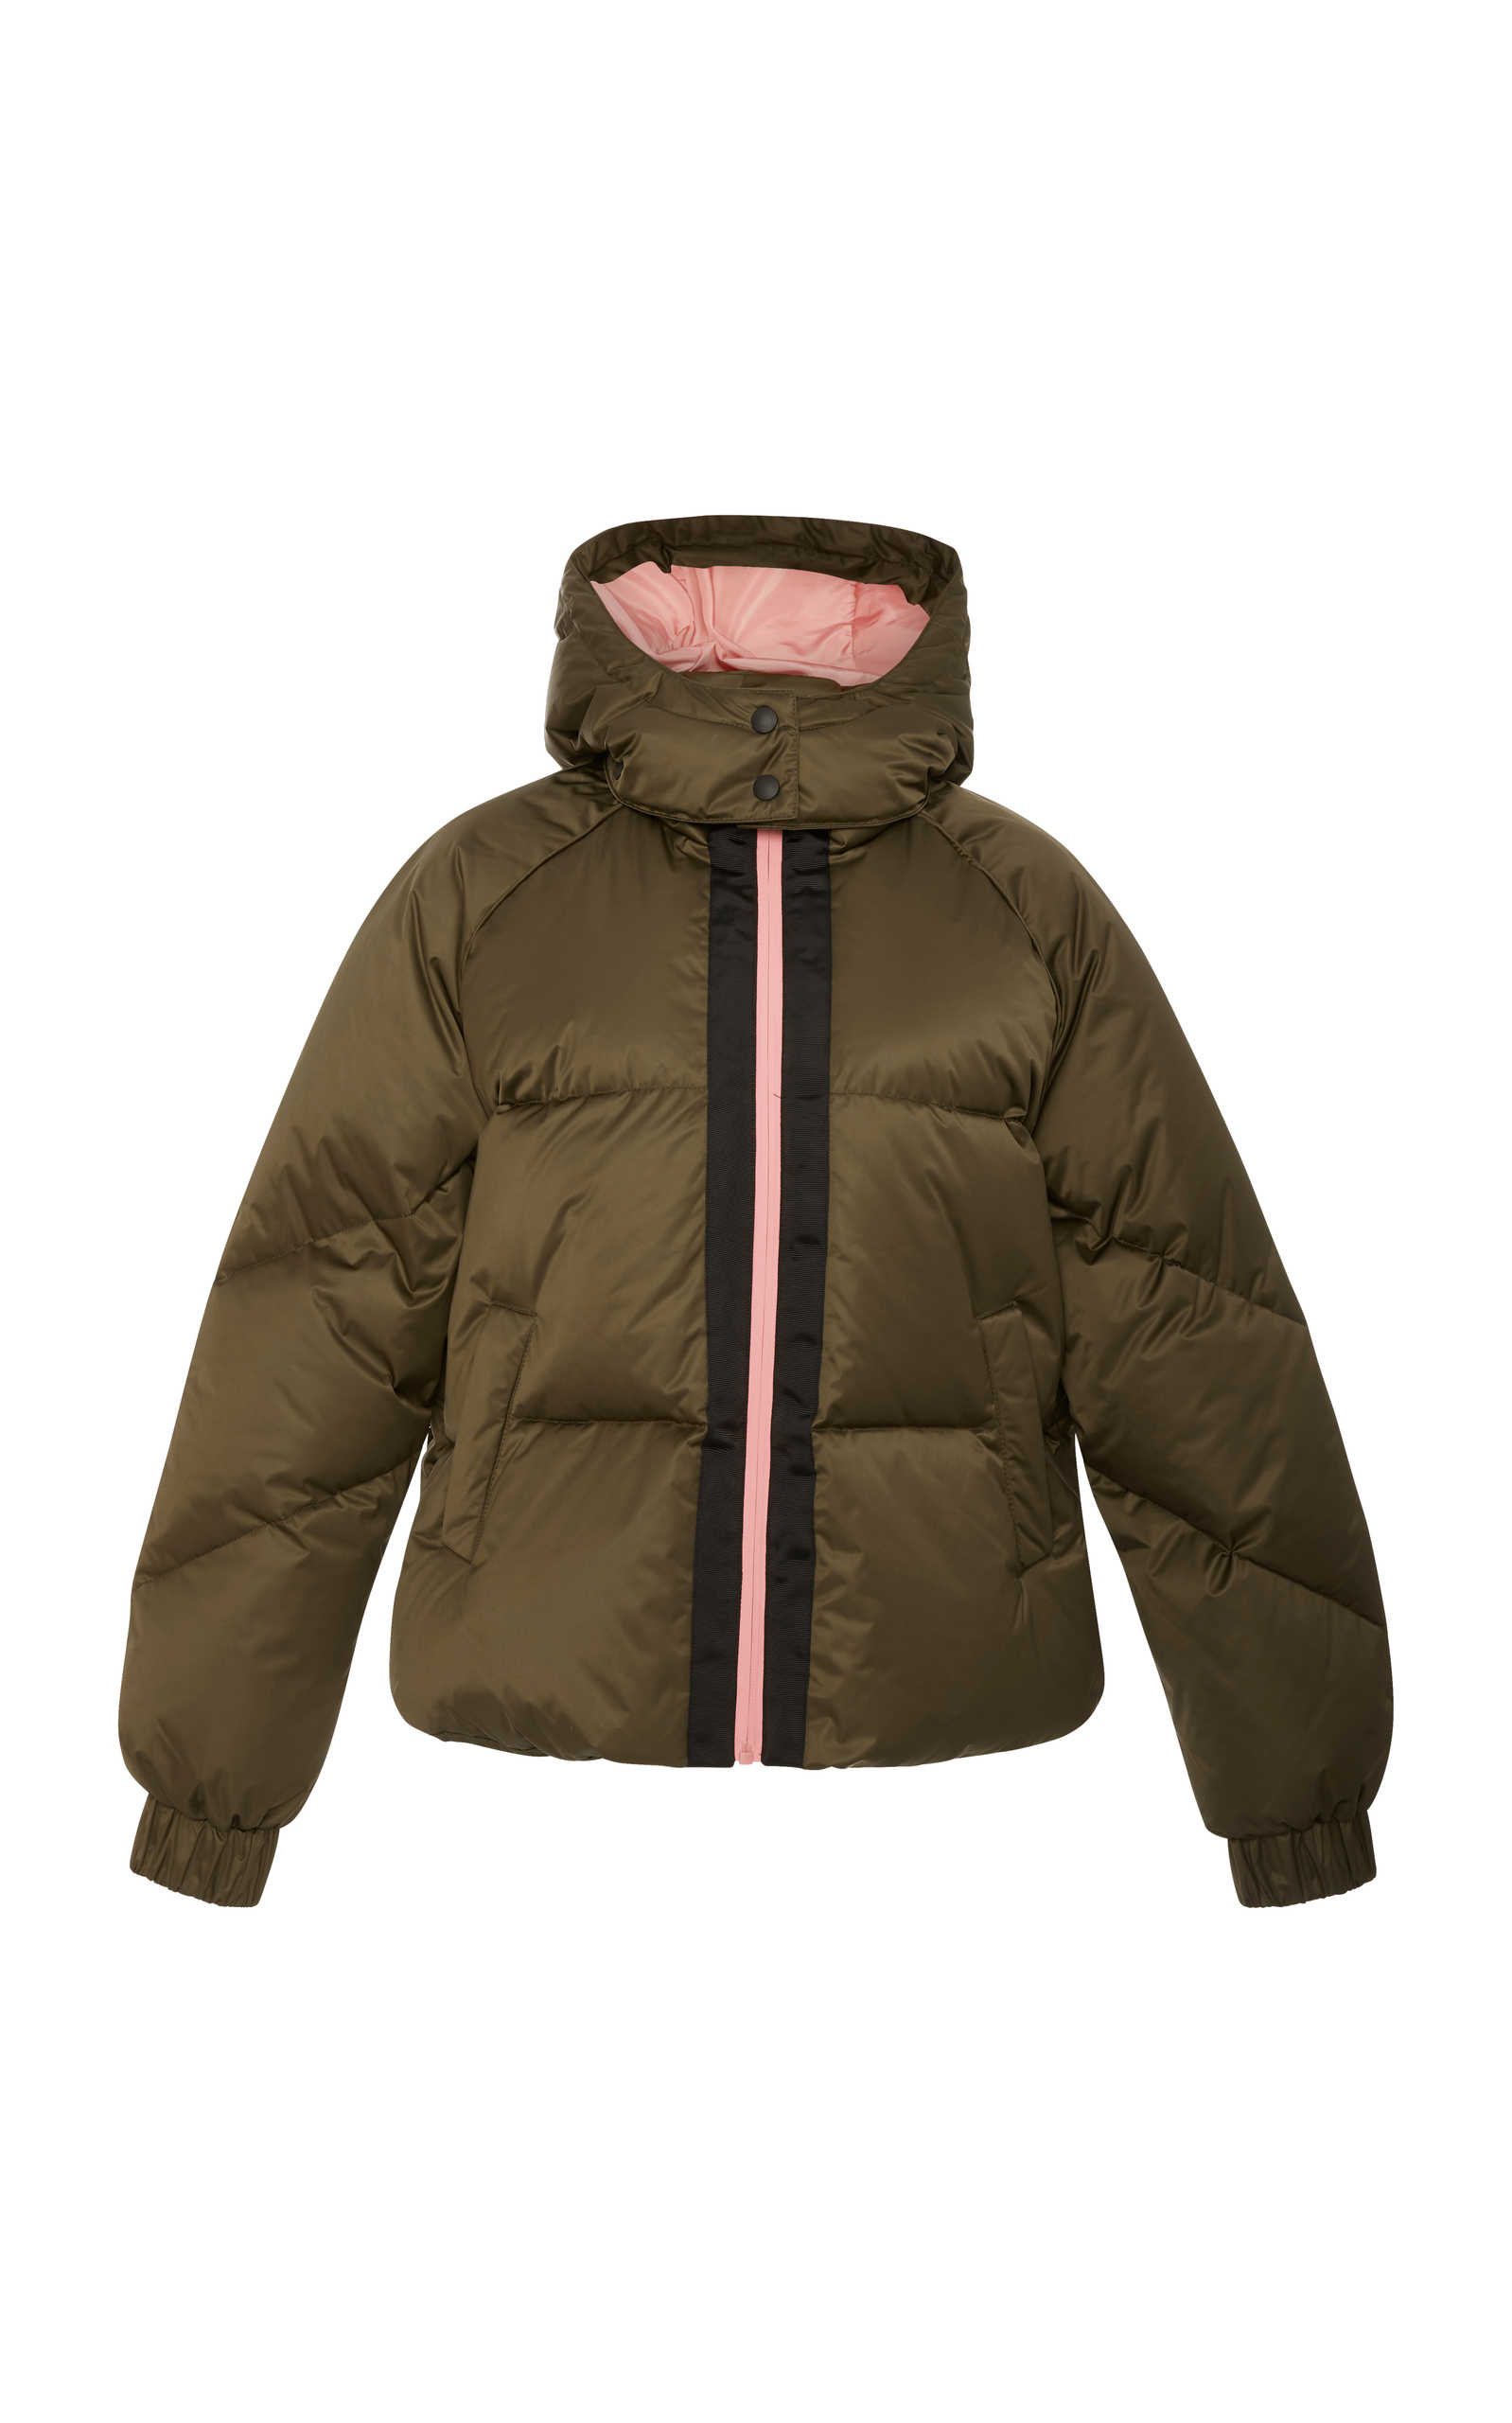 Puffer jacket with hood and contrasting zip